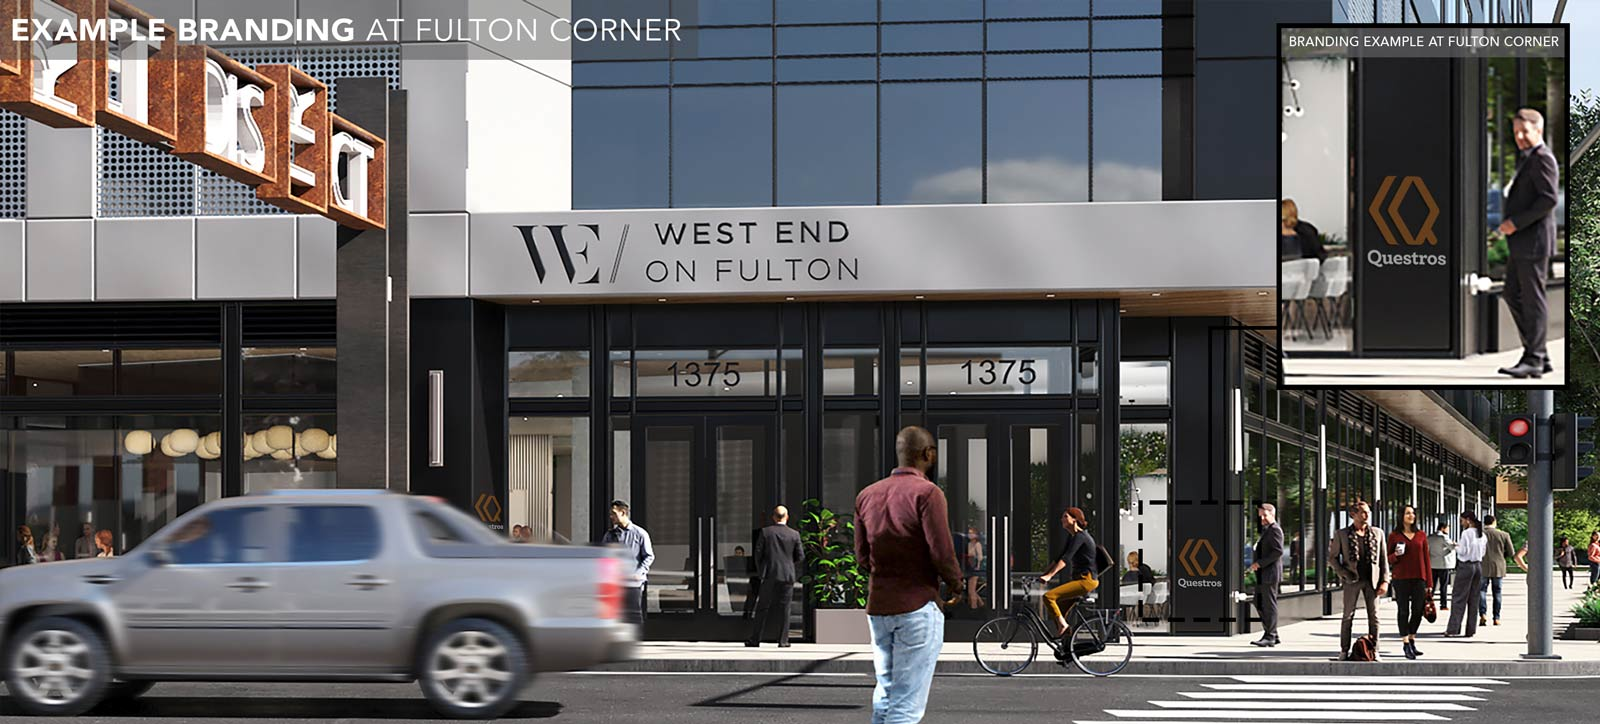 west-end-on-fulton-branding-opportunity_1